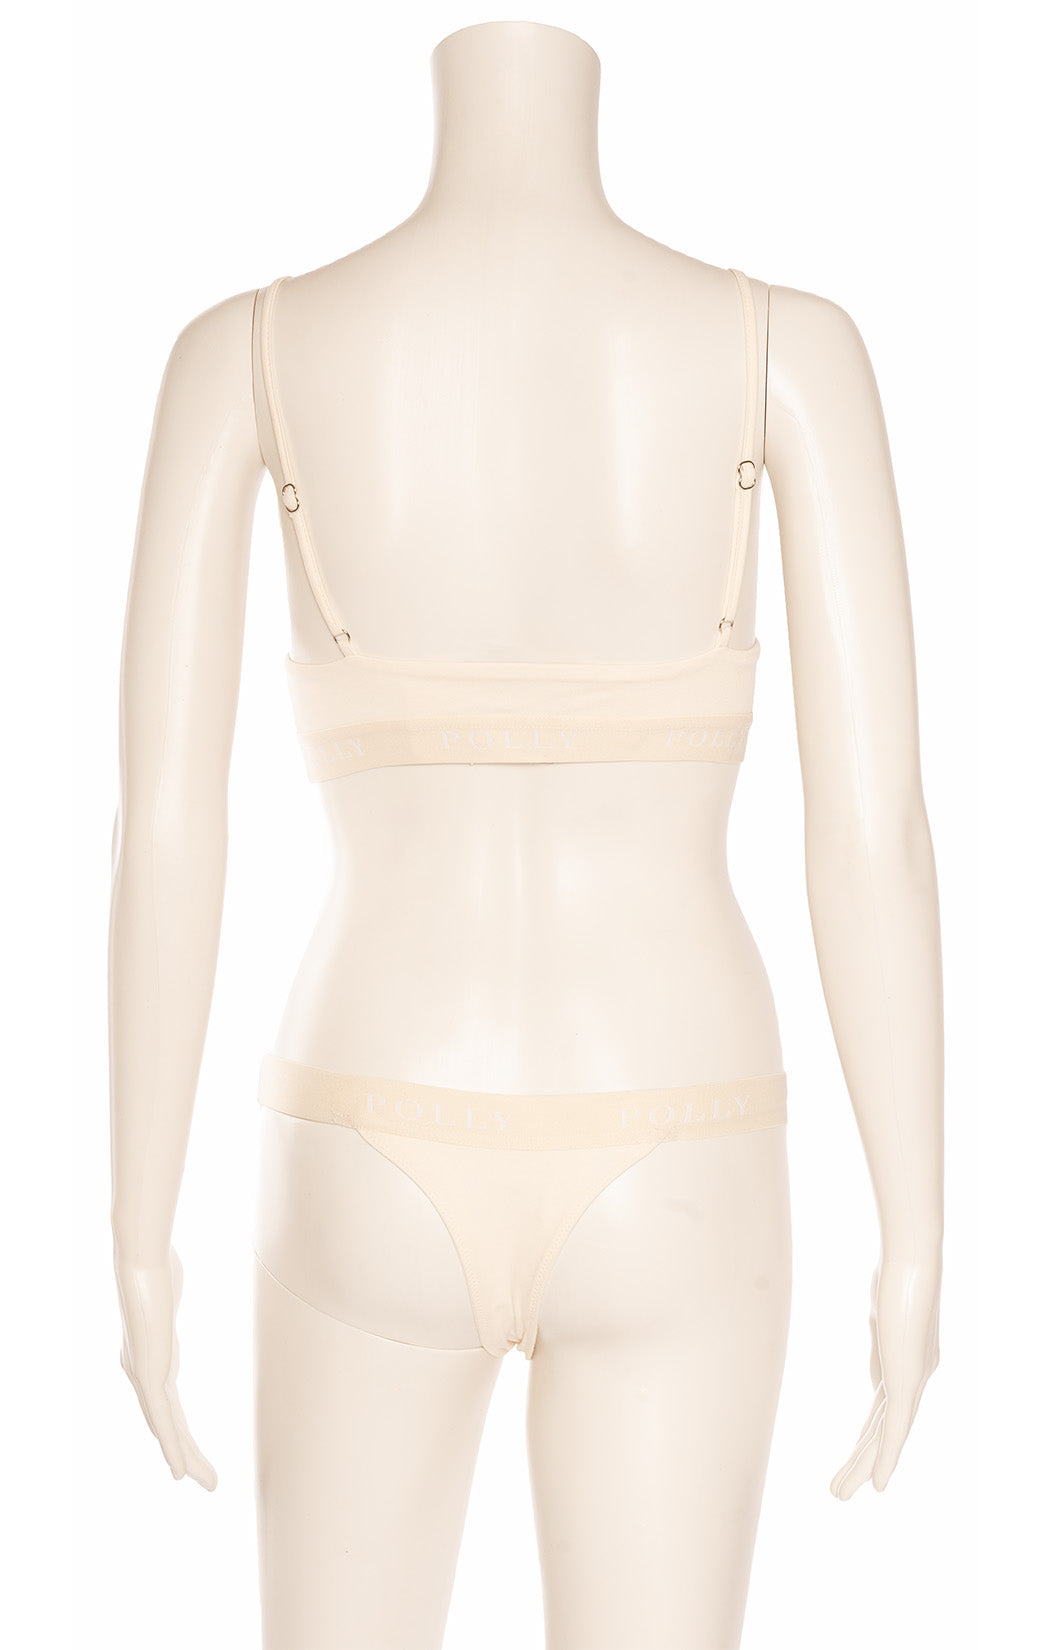 Ivory colored matching bra and panty set